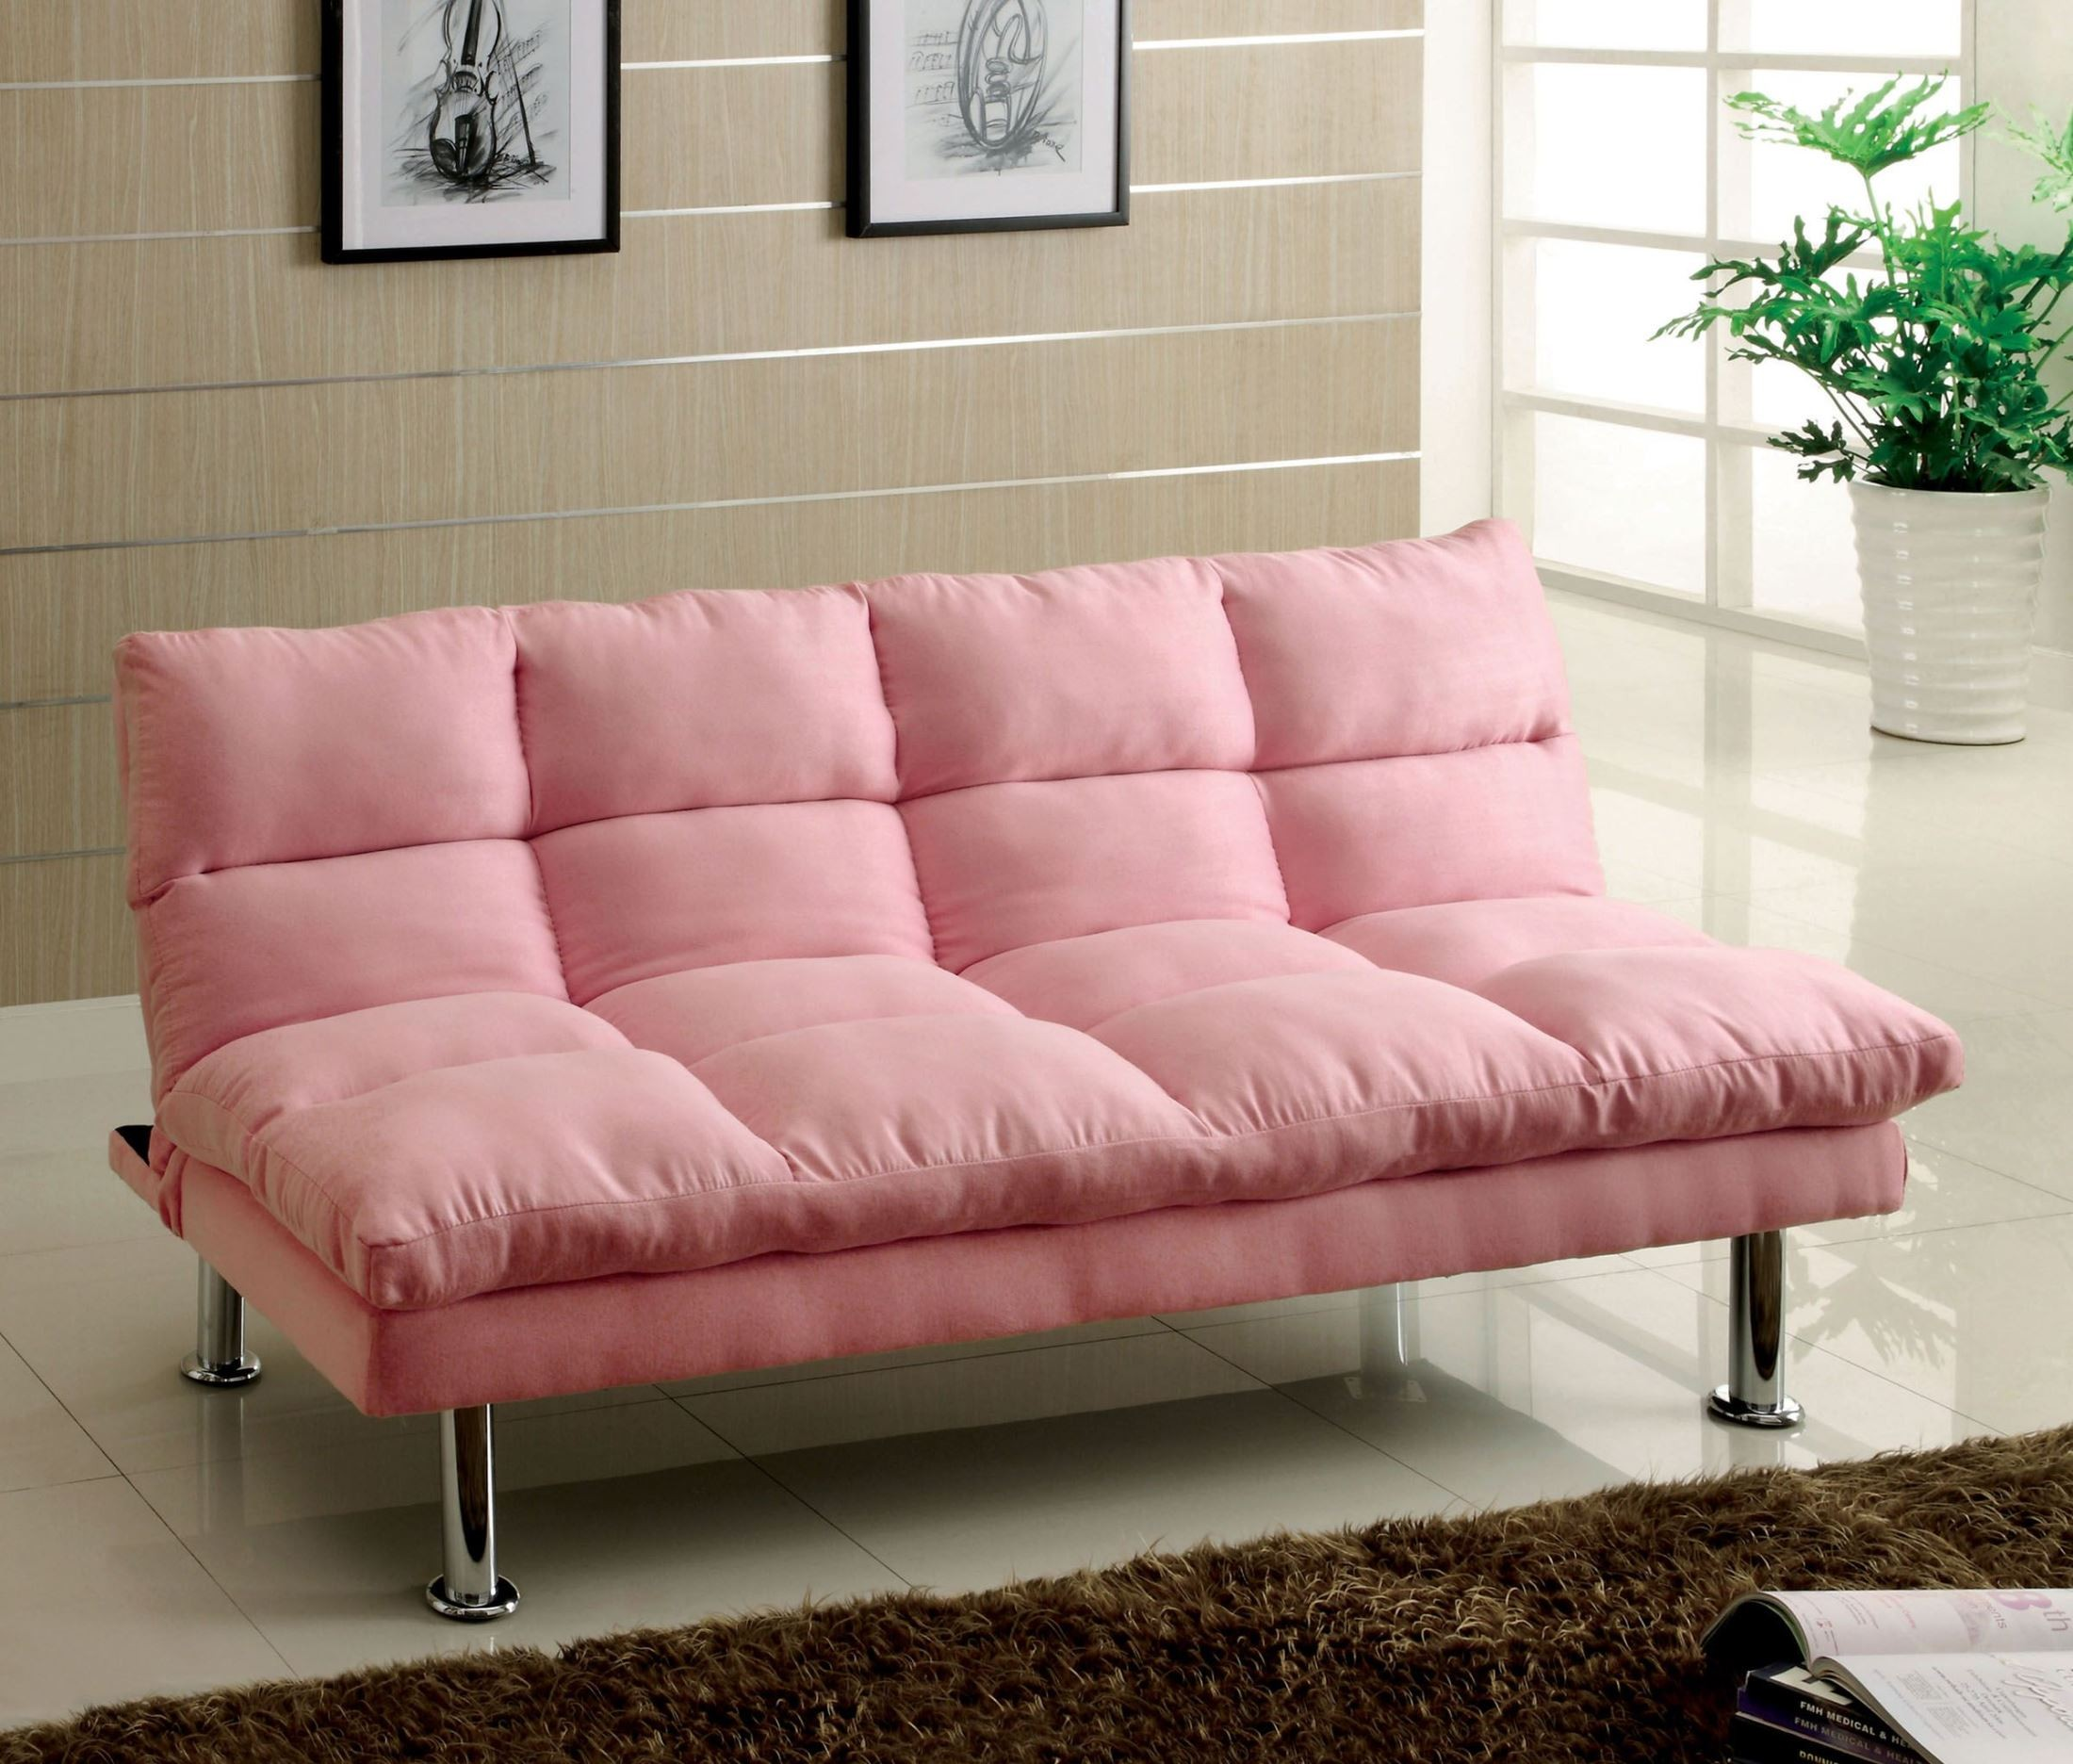 Saratoga Pink Microfiber Futon Sofa From Furniture Of